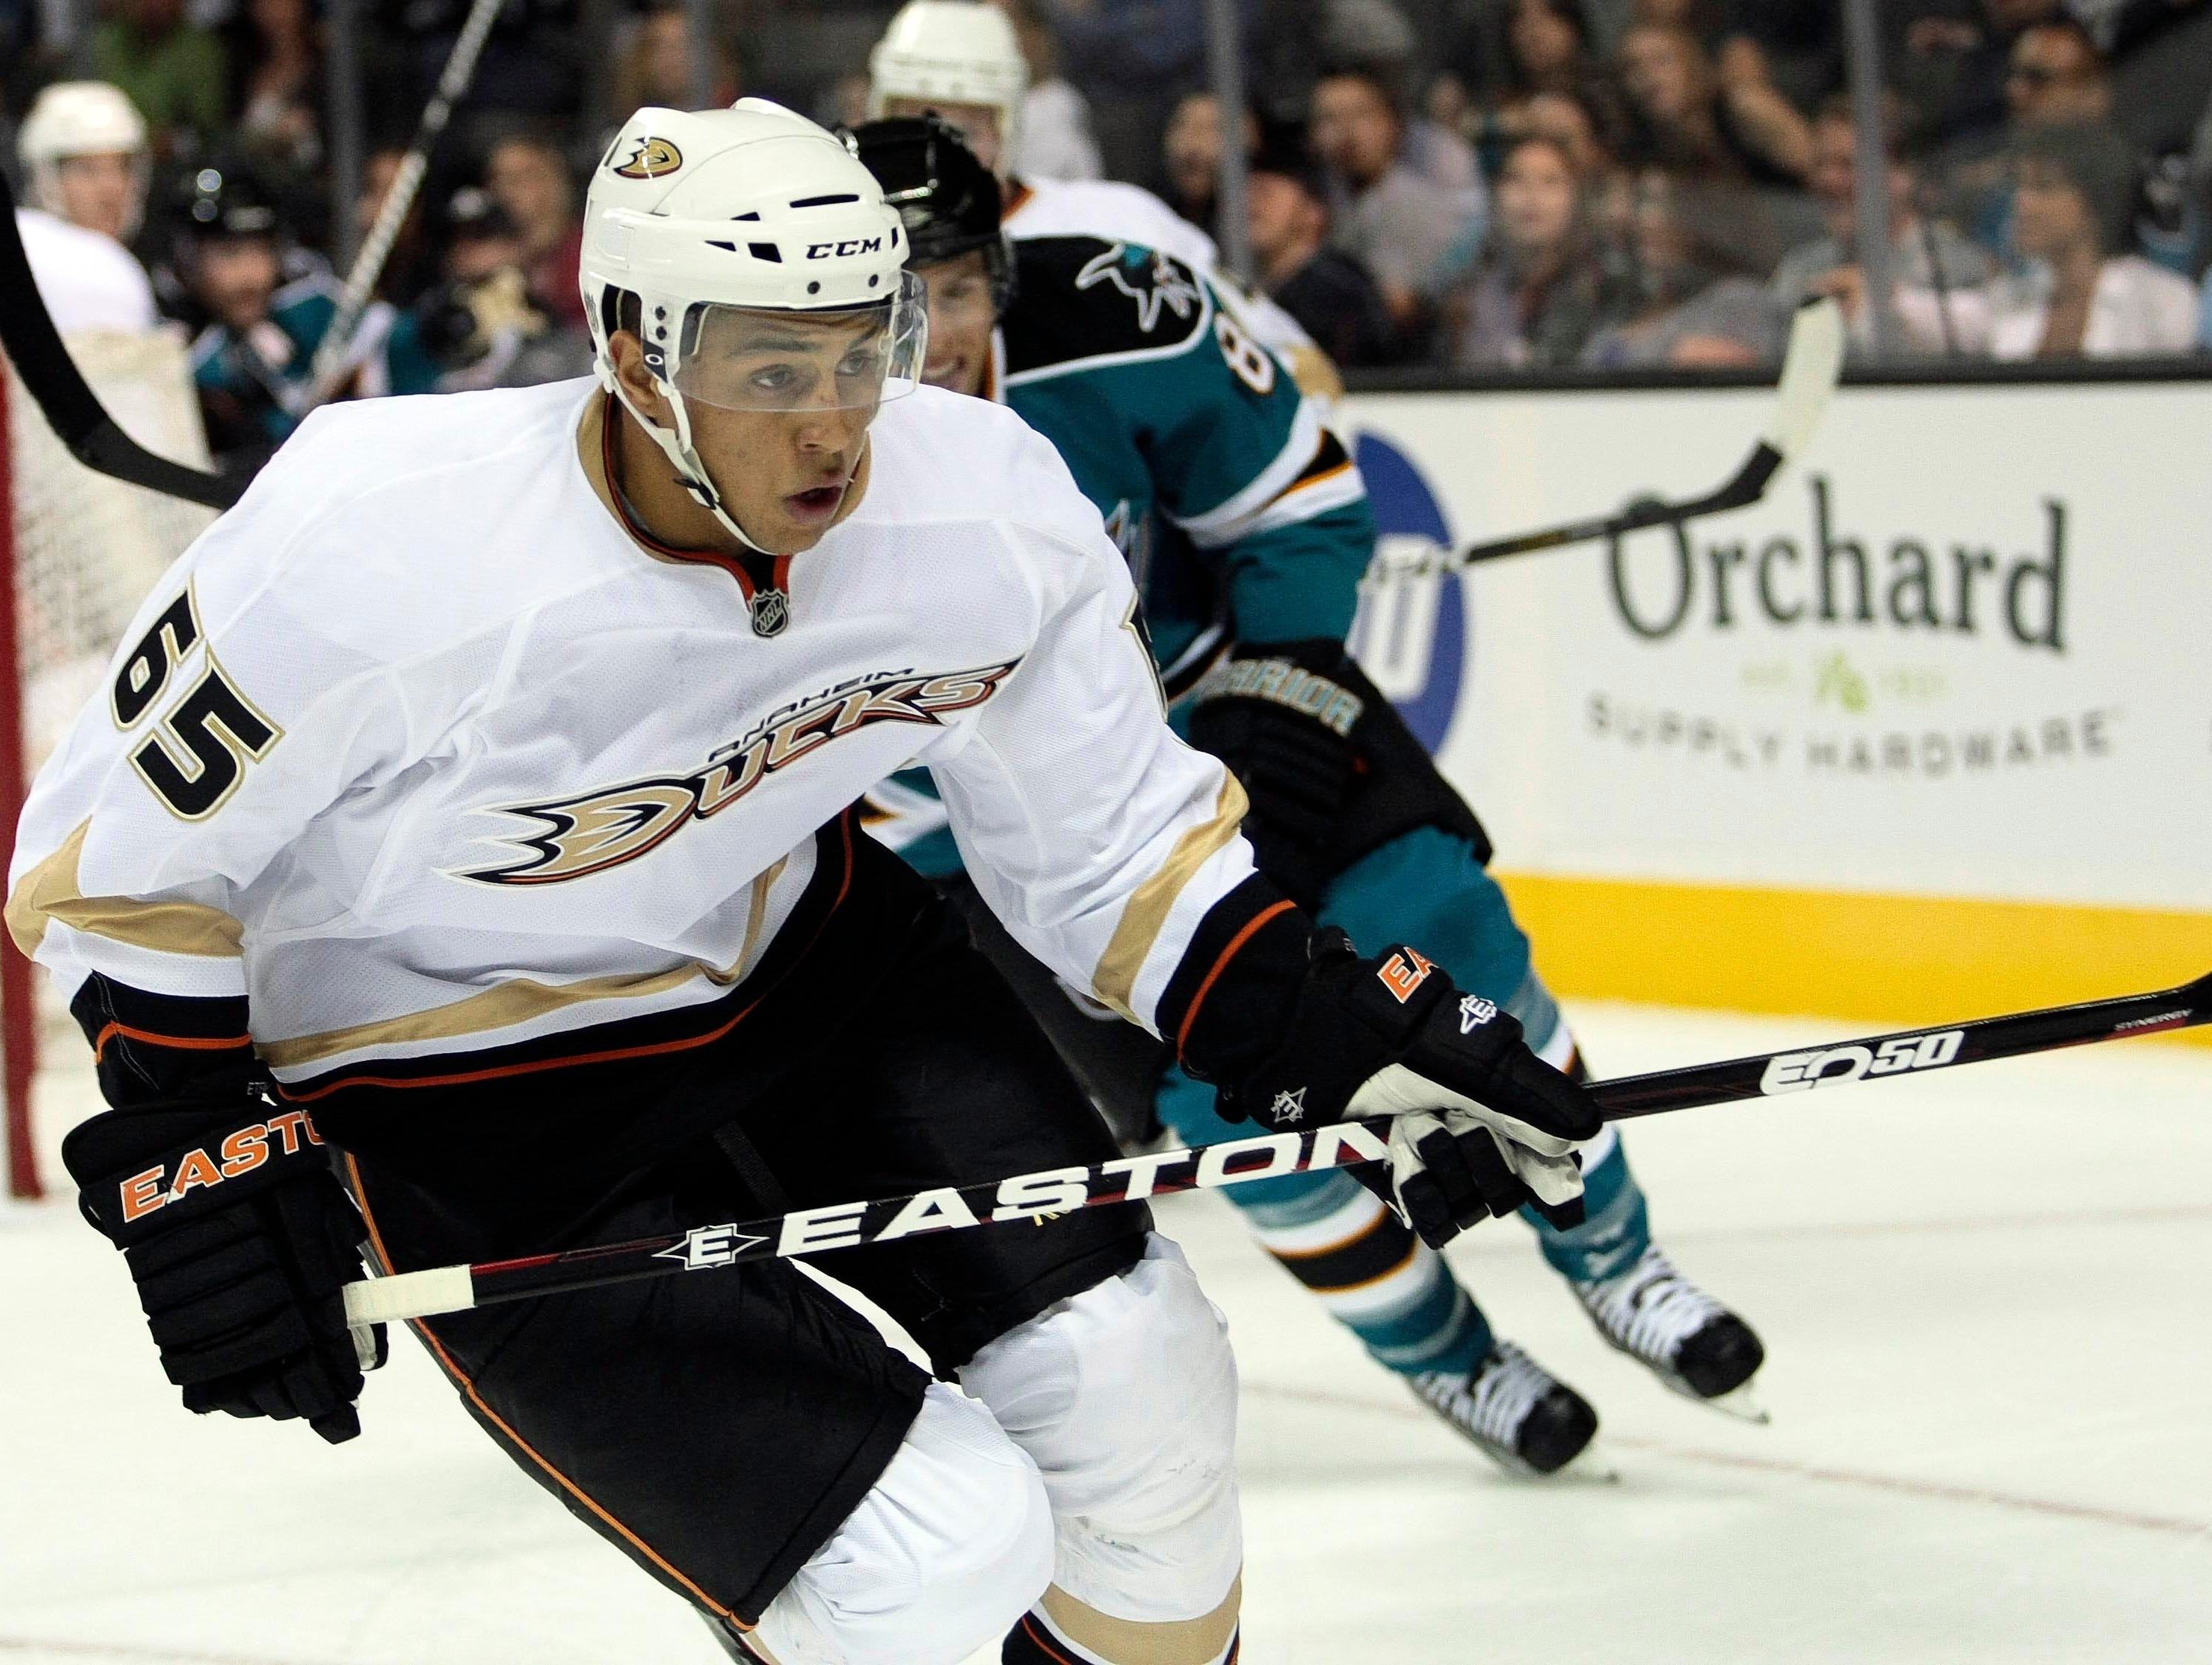 Fellow Californian Emerson Etem was also taken in the first round, by the Ducks, during that draft.